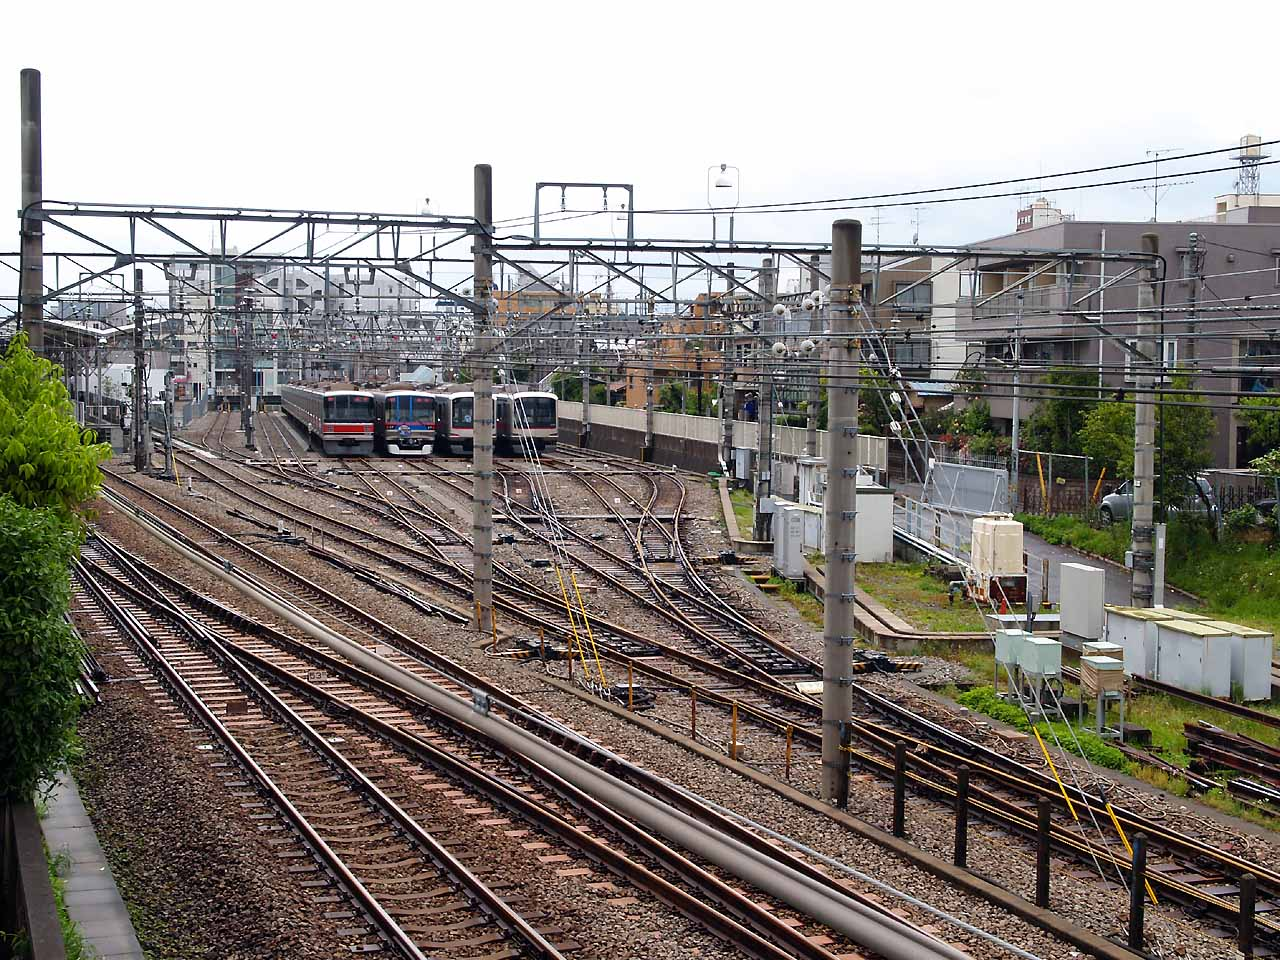 https://upload.wikimedia.org/wikipedia/commons/3/39/Tokyu_okusawa-yard_birdview2008.jpg